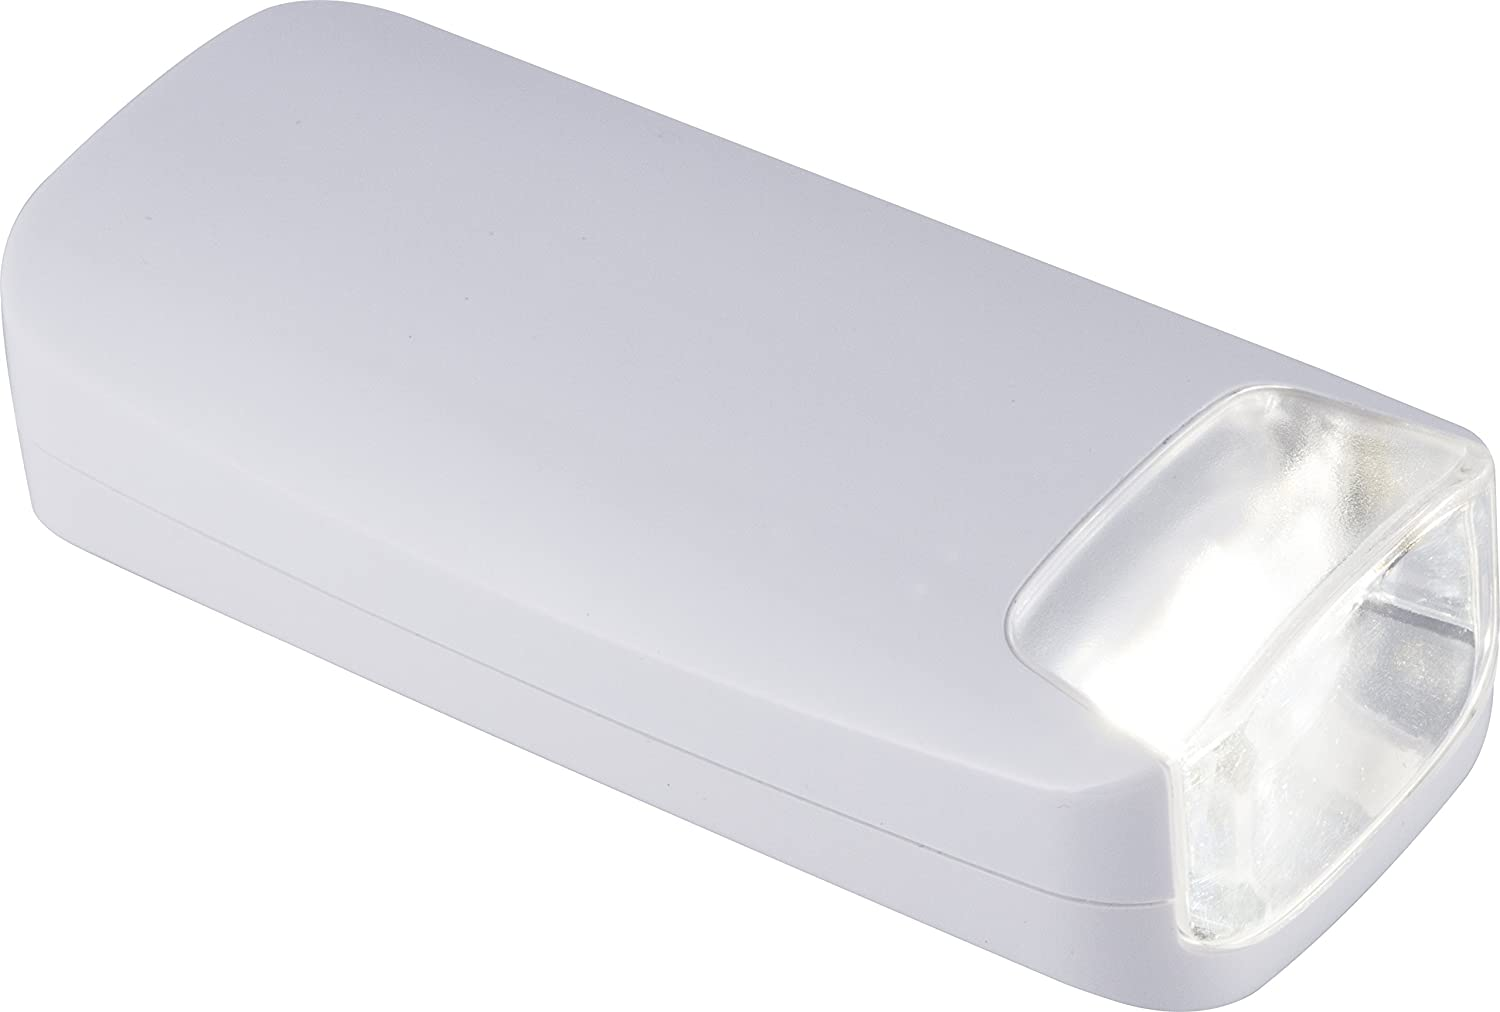 GE 37373 Power Failure Night Light, LED, Foldable Plug-In, Light Sensing, Auto On/Off, 40 Lumens, Emergency Flashlight, Tabletop Light, Ideal for Bedroom, Bathroom, Hallway, Stairs, Pantry and more